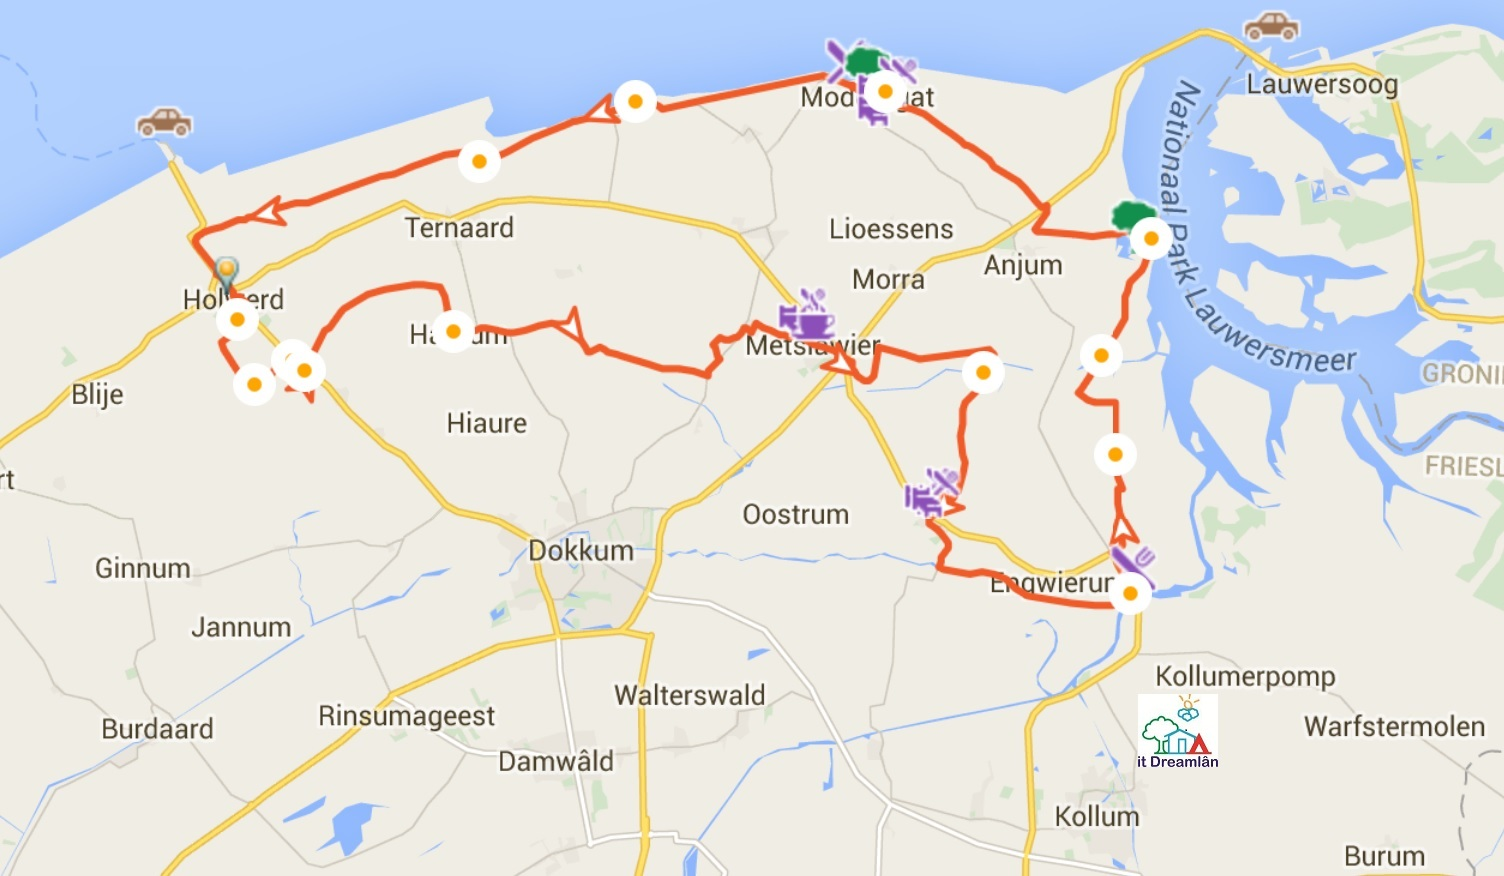 Waddentour through Ee, Holwerd, Metslawier, Paesens en Moddergat in North-East Friesland Netherlands